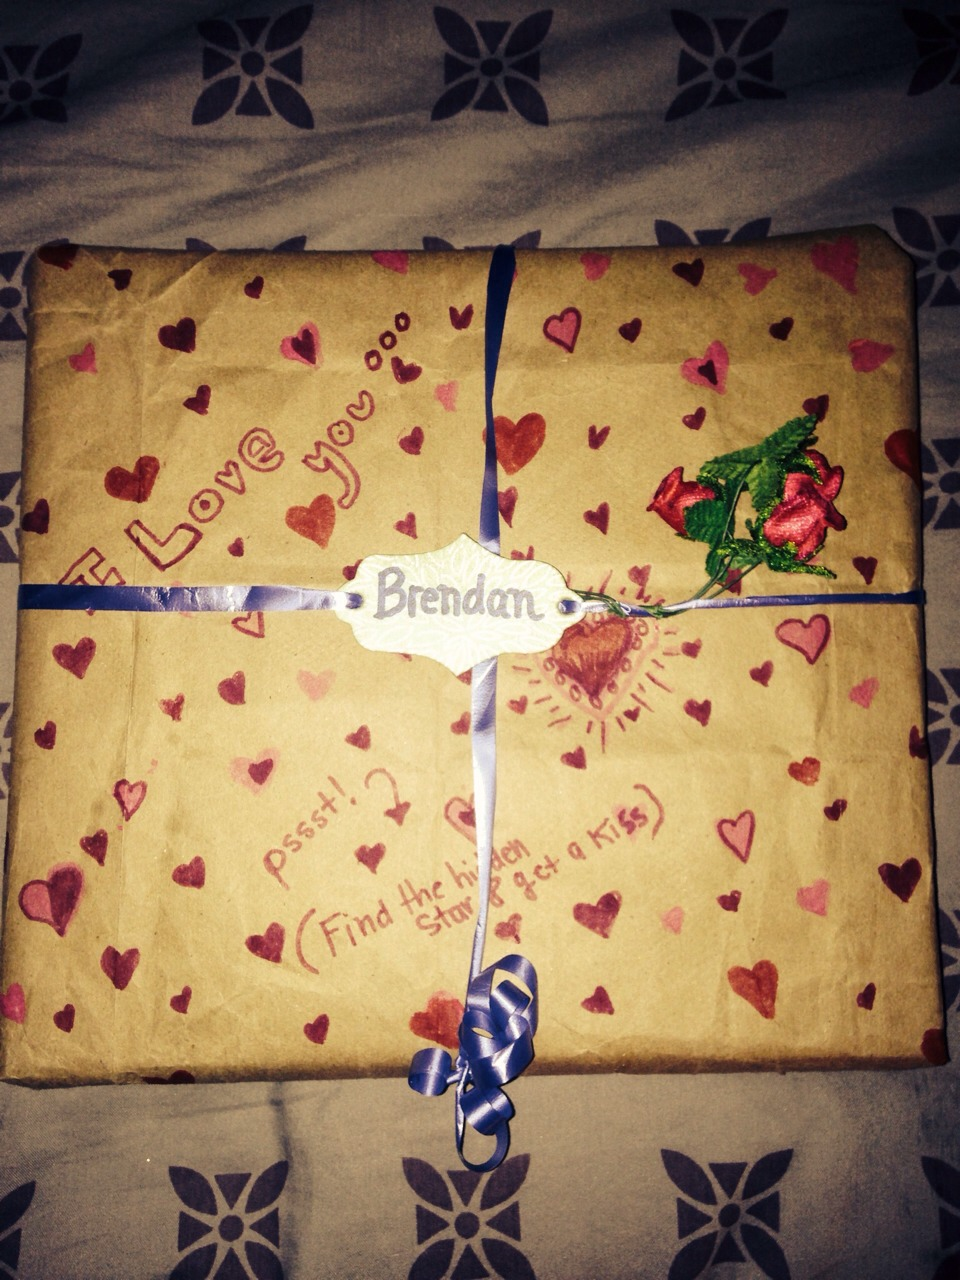 Make wrapping paper out of a paper bag! Personalize it for an even special gift. Tip: make a game to find a hidden object  in the paper for a prize